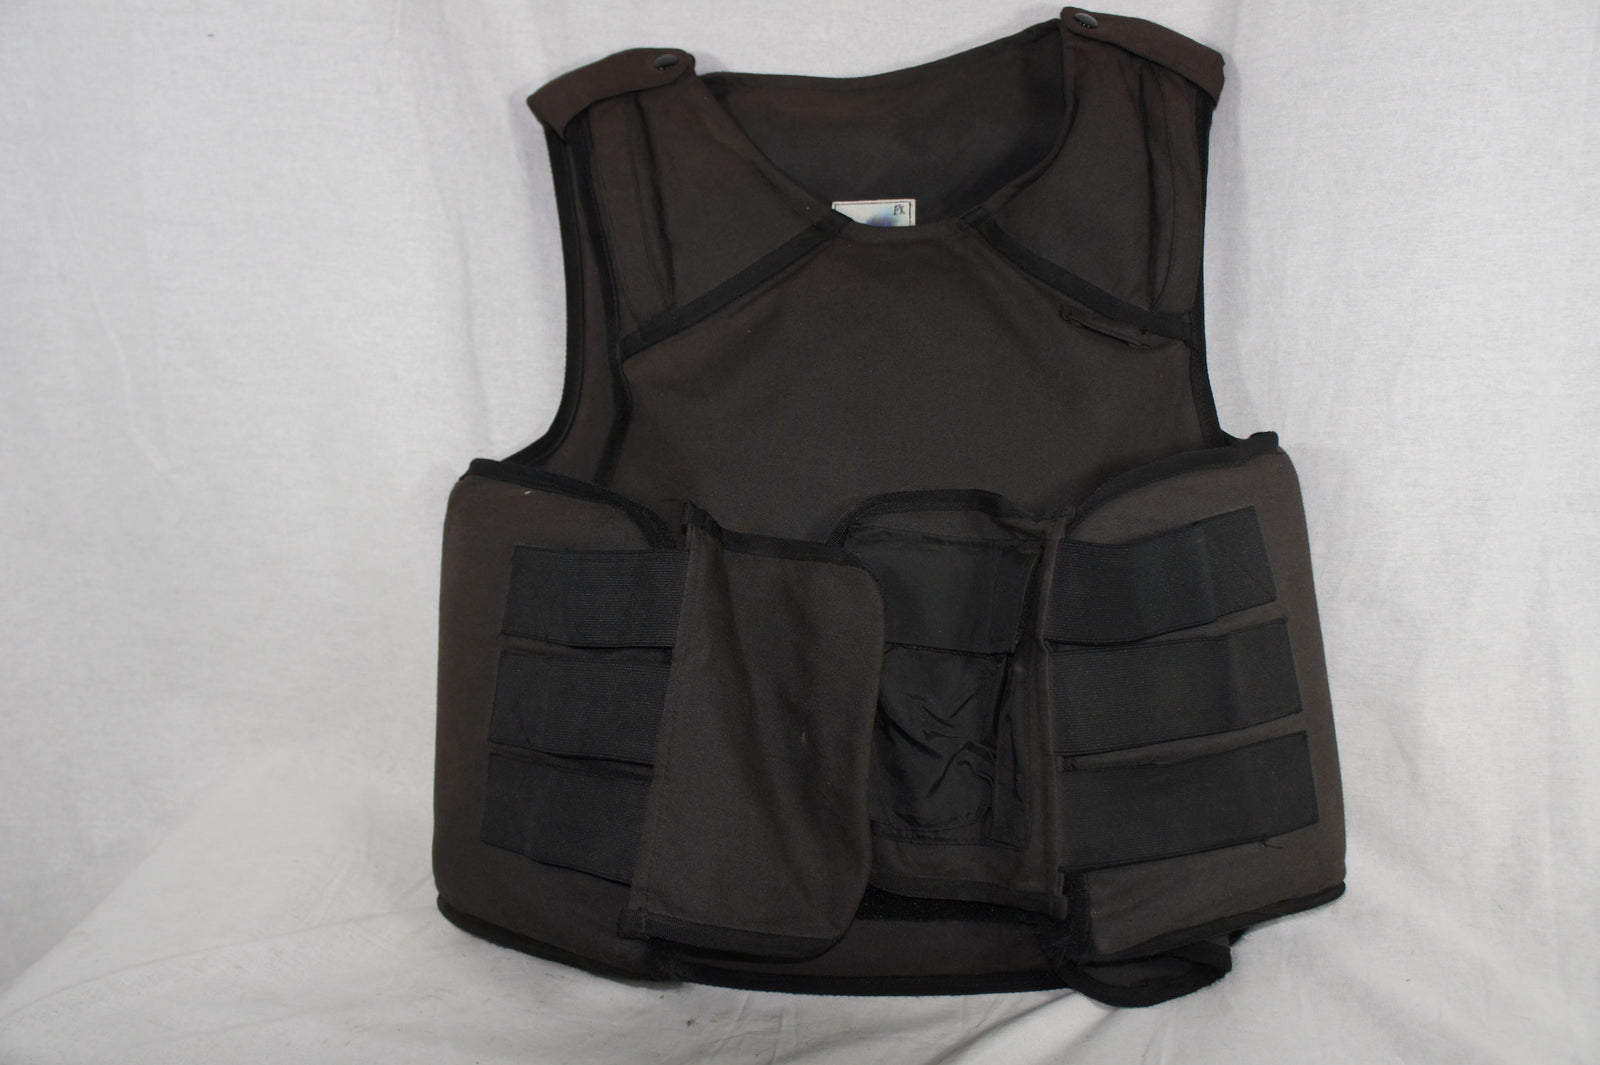 German Police surplus body armour WITH CERAMIC PLATES ballistic bullet proof